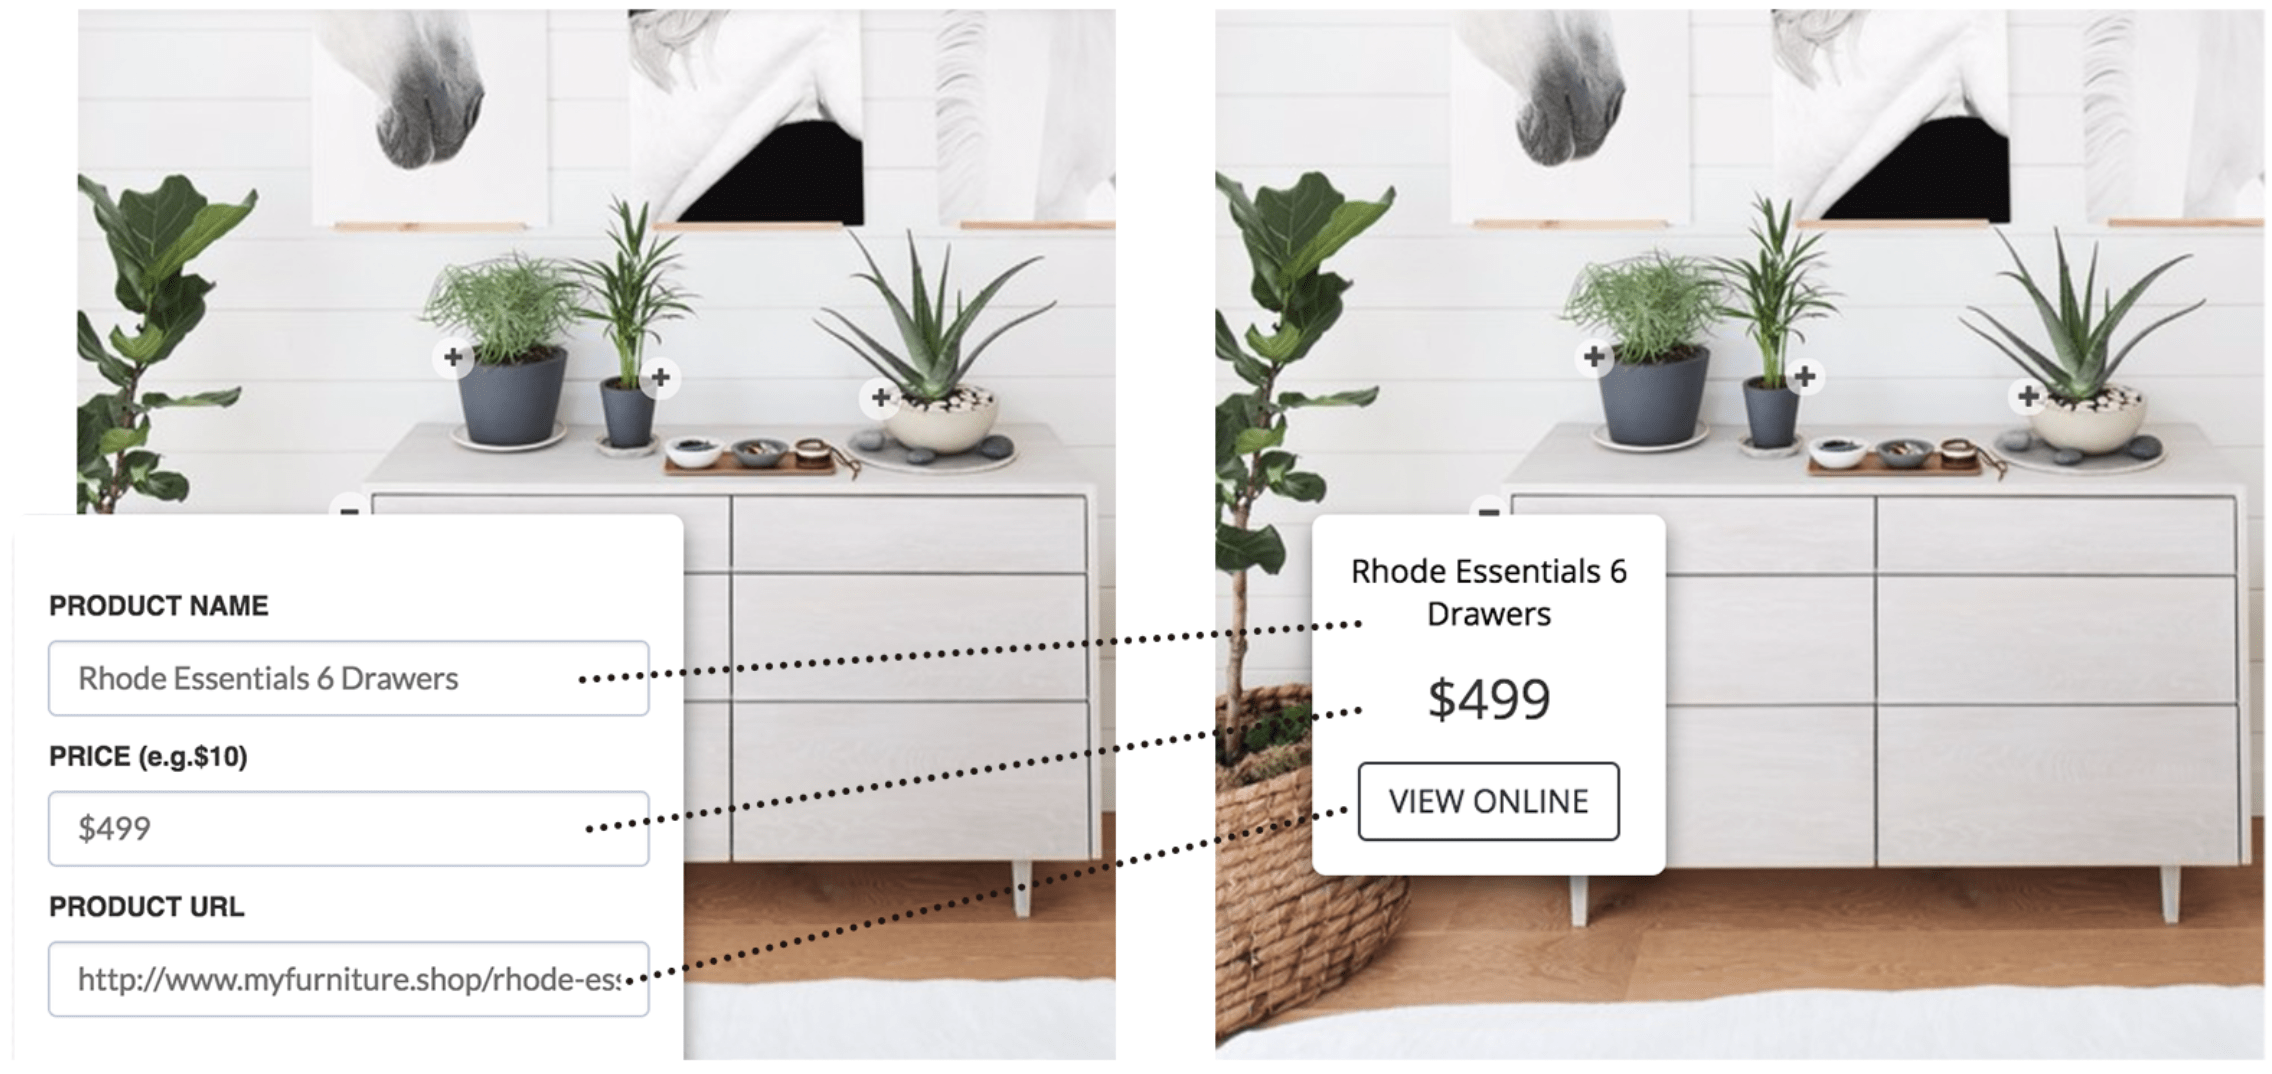 how-to-make-a-shoppable-image-using-linklay